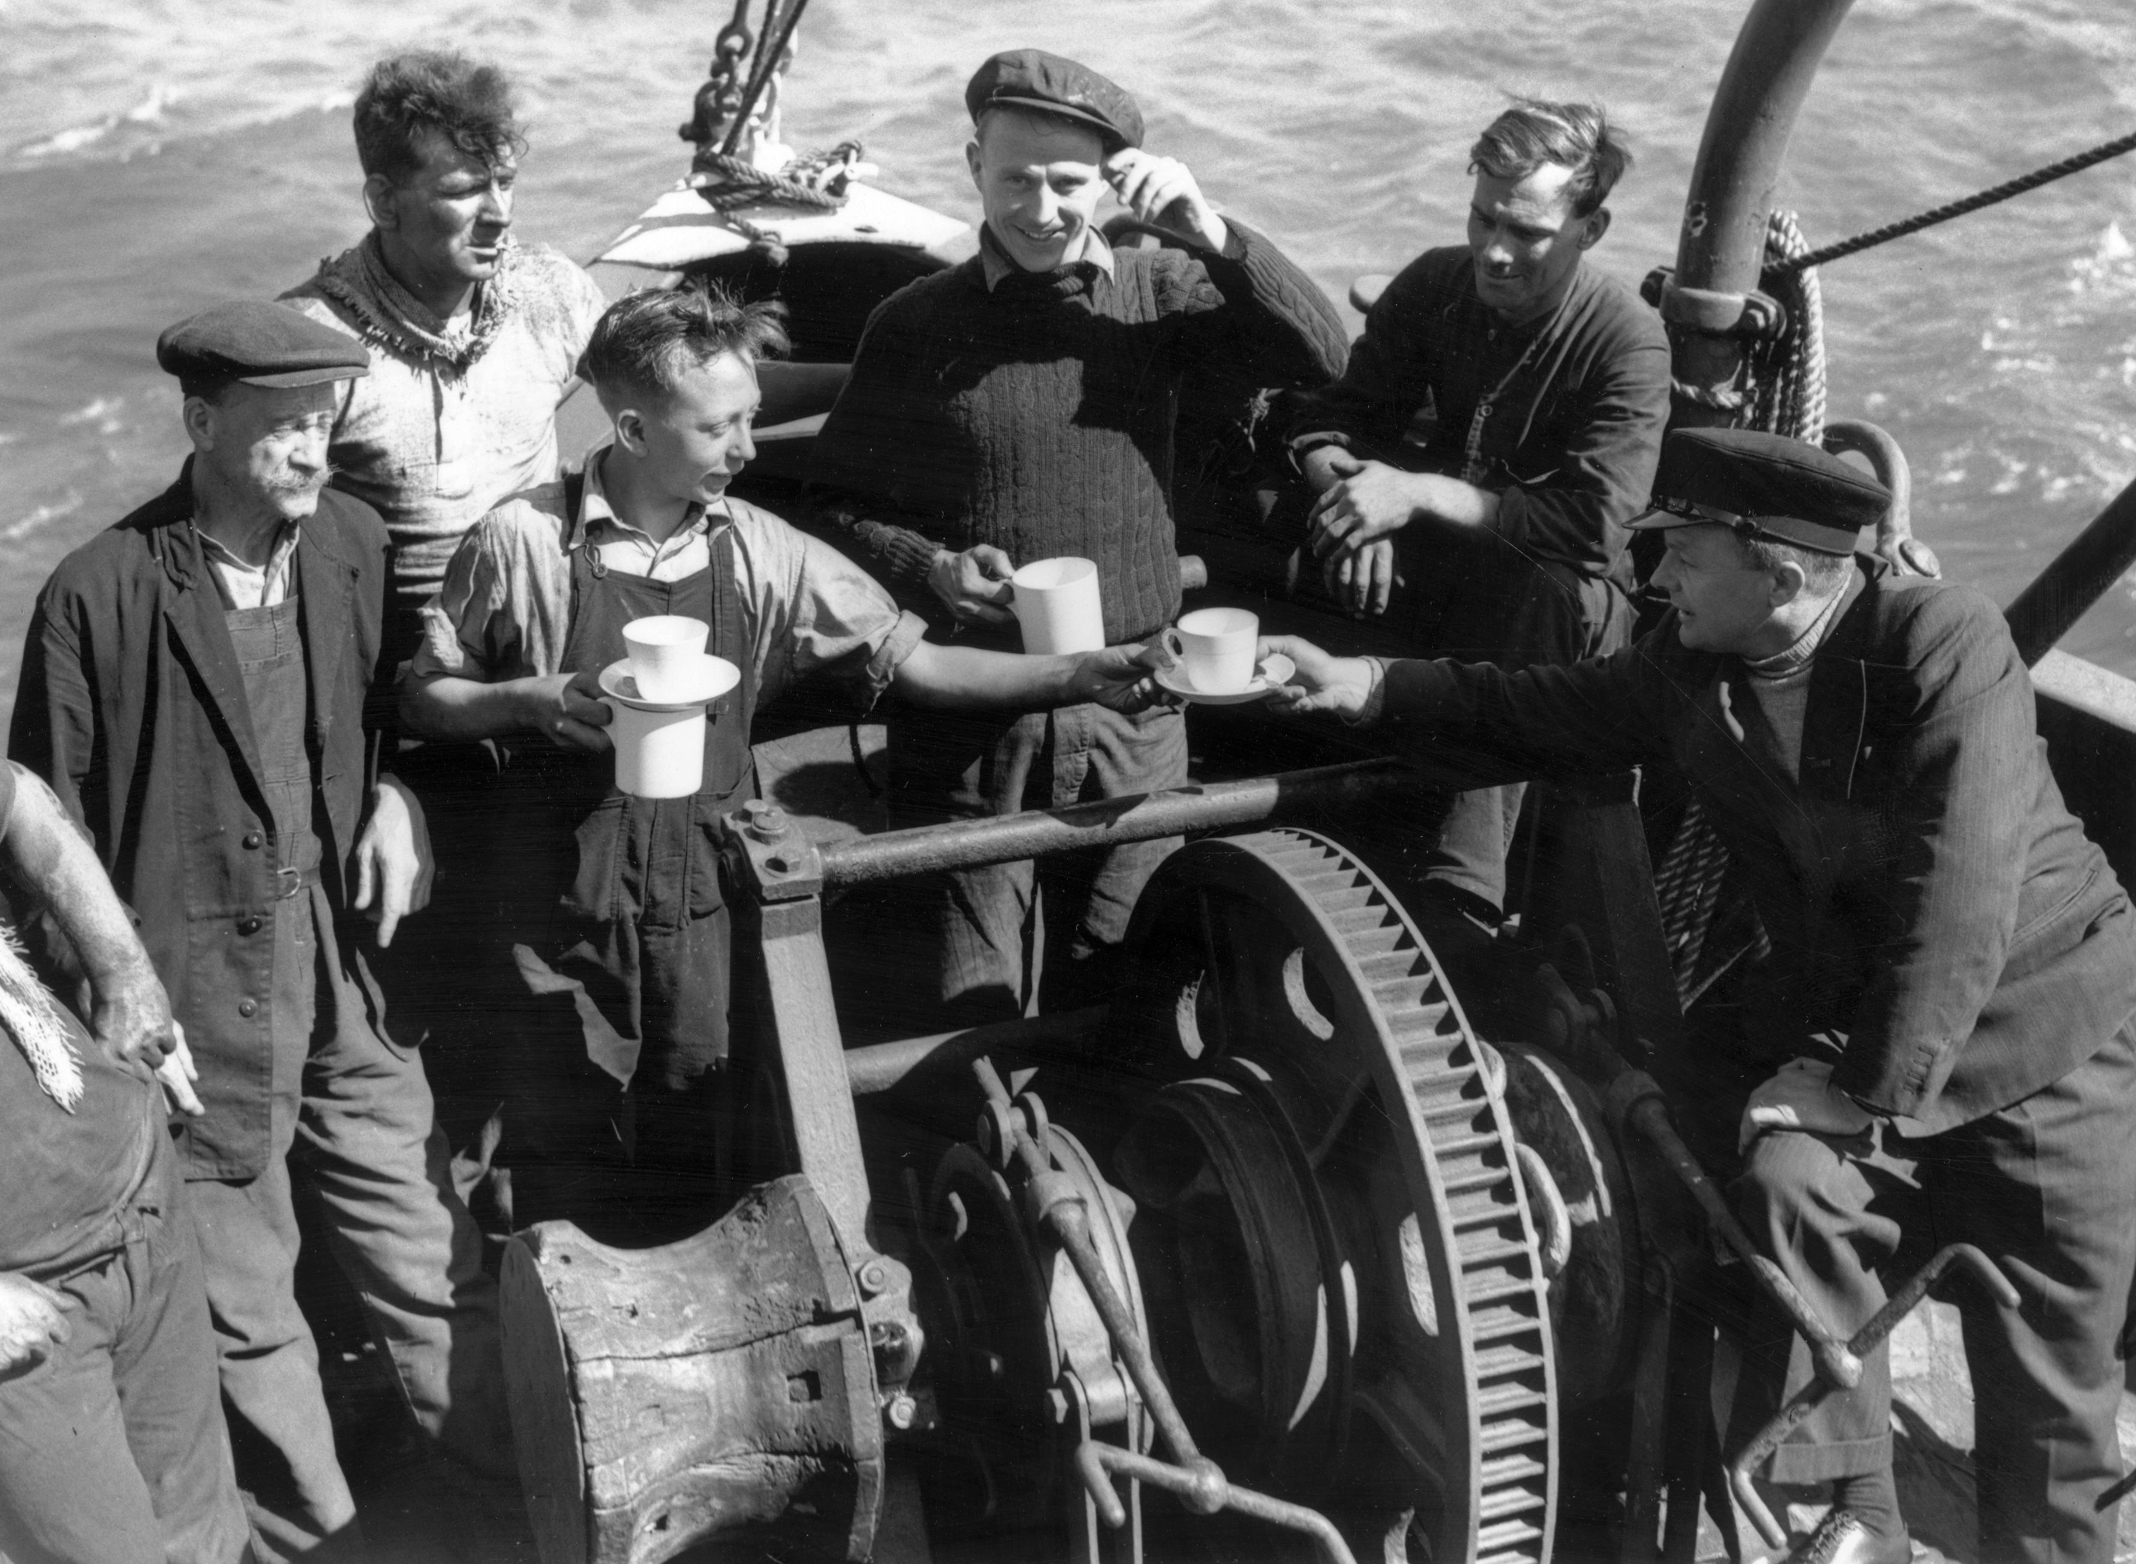 5th June 1940: The crew of the London based tug 'Sunvill' one of the many small craft which took part in the evacuation of British and allied troops from Dunkirk.